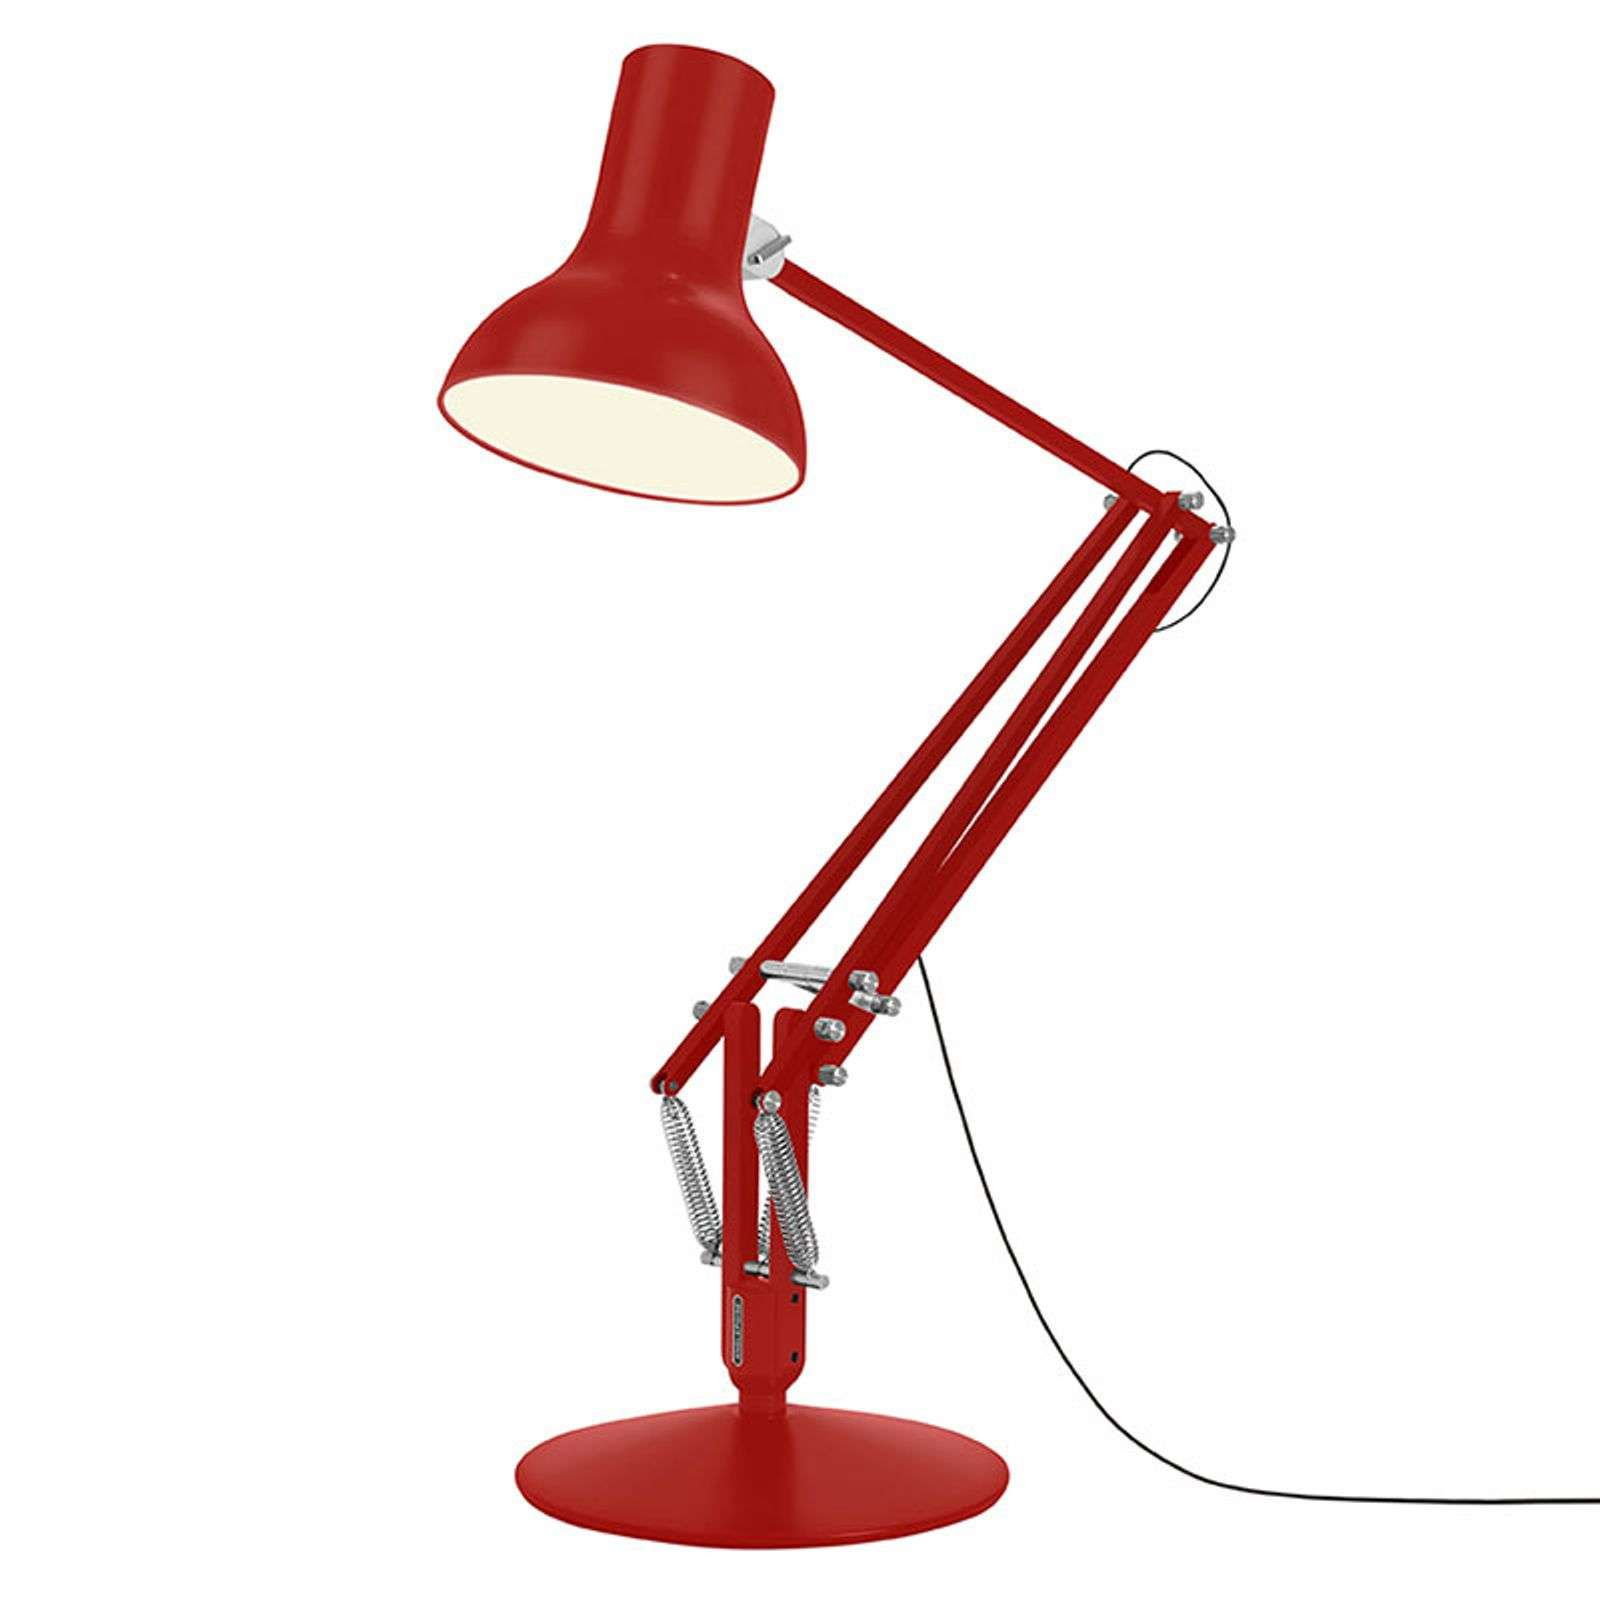 Anglepoise Type 75 Giant lampadaire rouge